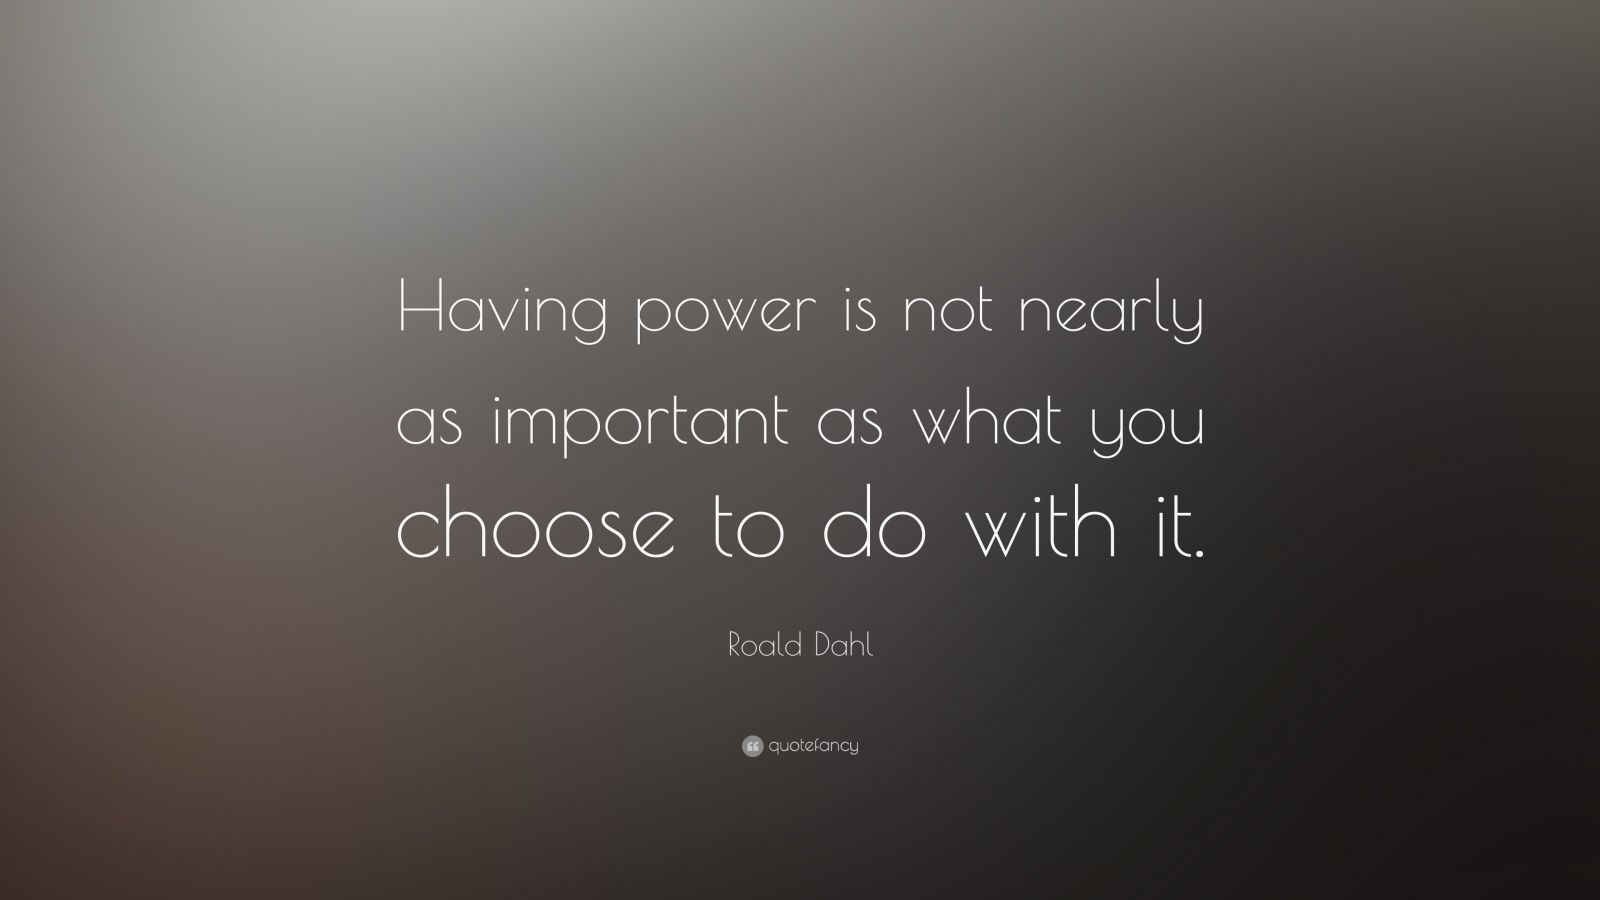 Socrates Wallpaper Quotes Roald Dahl Quote Having Power Is Not Nearly As Important